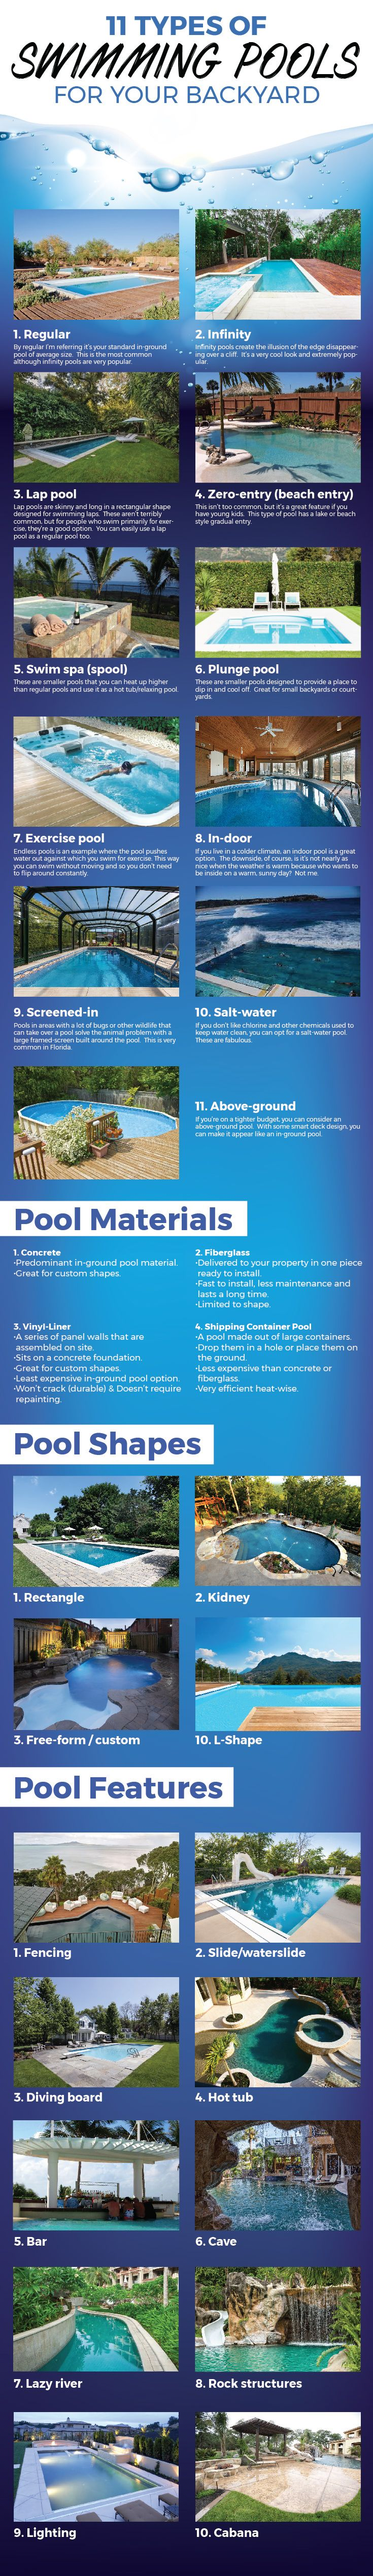 Cool blue chart setting out the 11 types of swimming pools, pool materials and pool features.